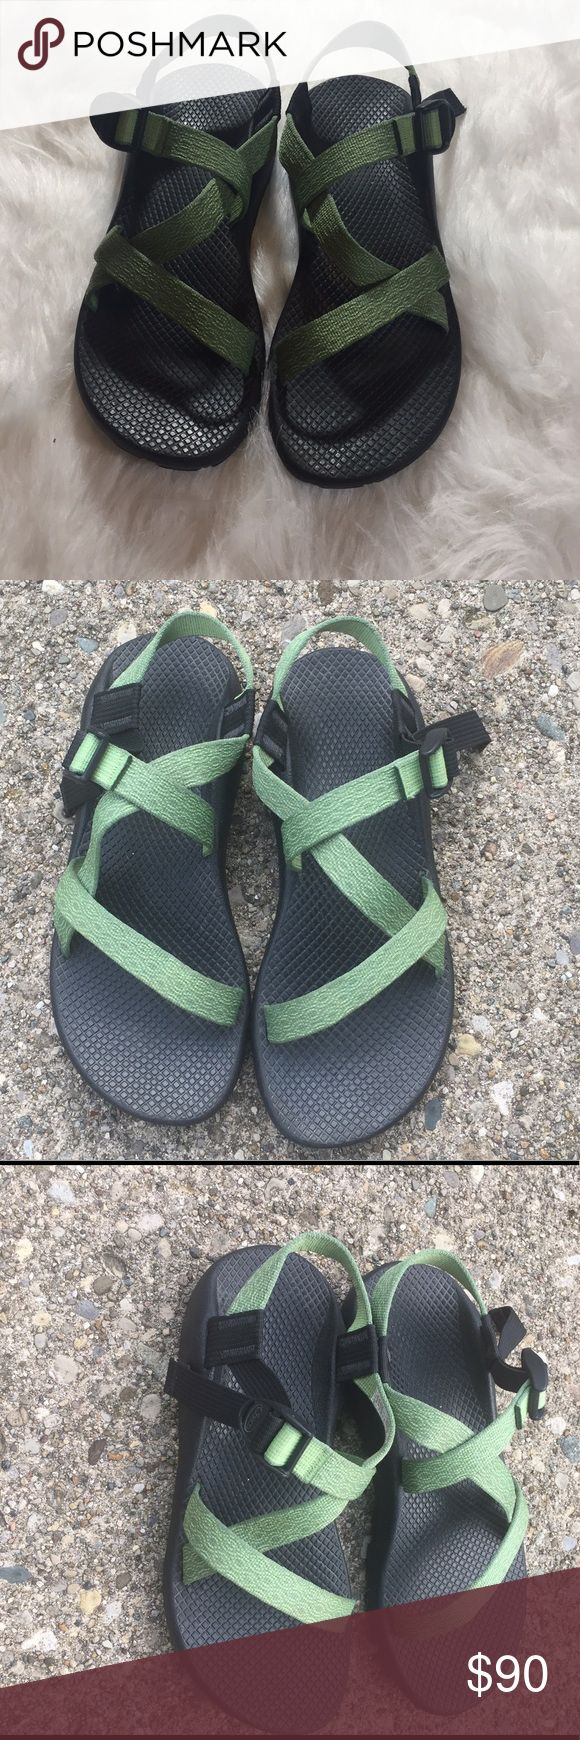 WOMEN'S Chaco Z/1 SANDAL EUC Size W9 WOMEN'S Chaco Z/1 SANDAL EUC Size W9 The ultimate performance sandal, custom built to your specifications.  UPPER: Polyester jacquard webbing upper wraps around the foot and through the midsole for a customized fit Adj